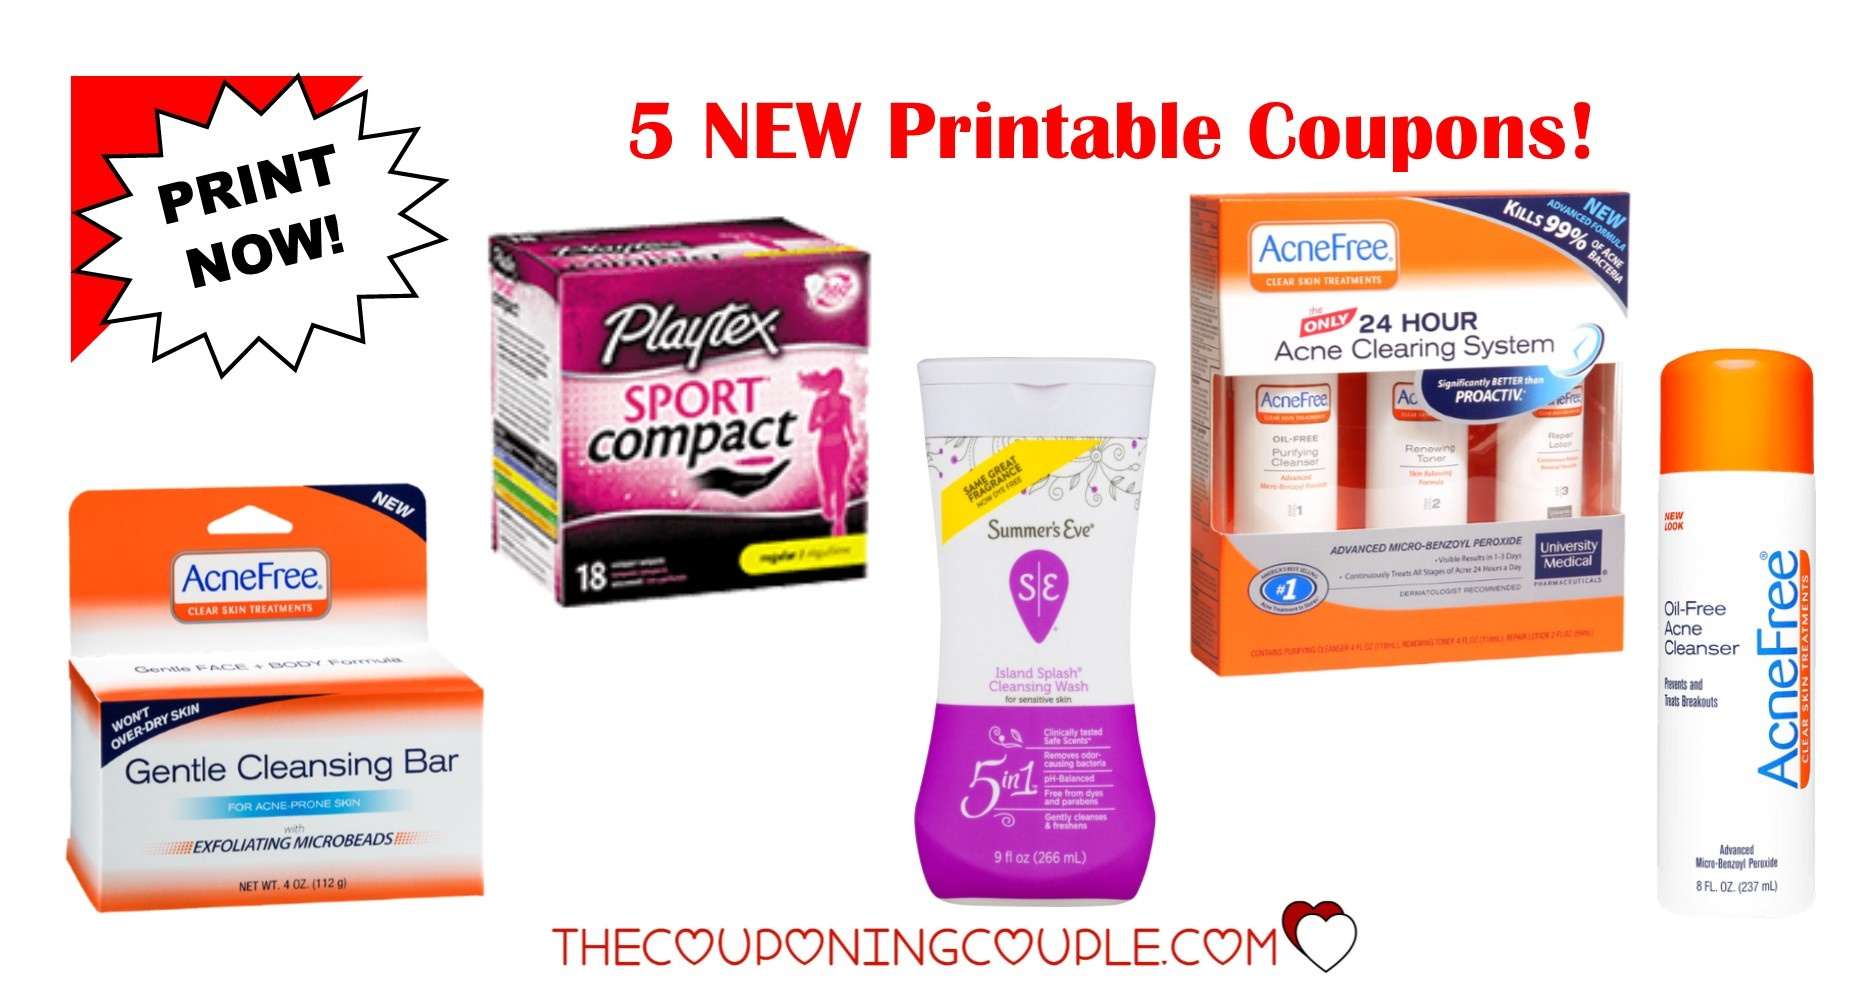 5 New Printable Coupons ~ $13.50 In Savings! Print Now! - Acne Free Coupons Printable